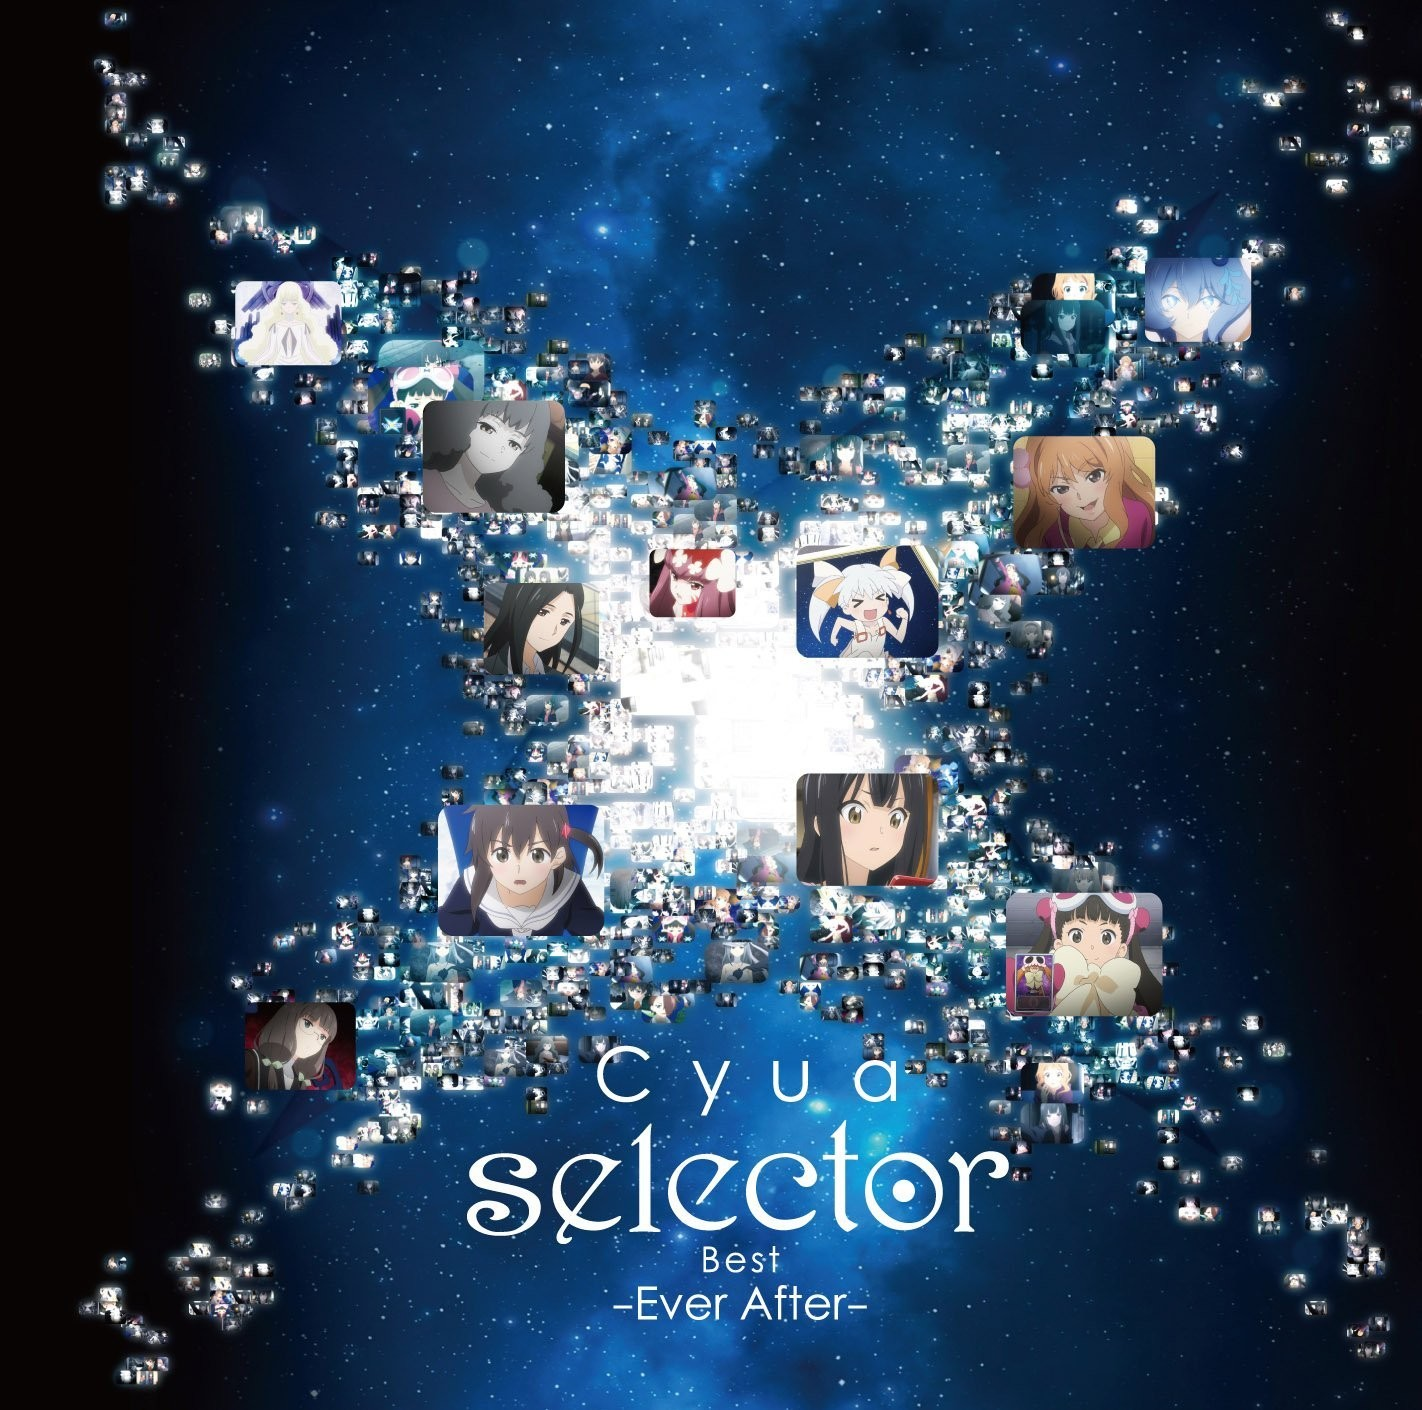 Cyua/「selector」Best –Ever After-